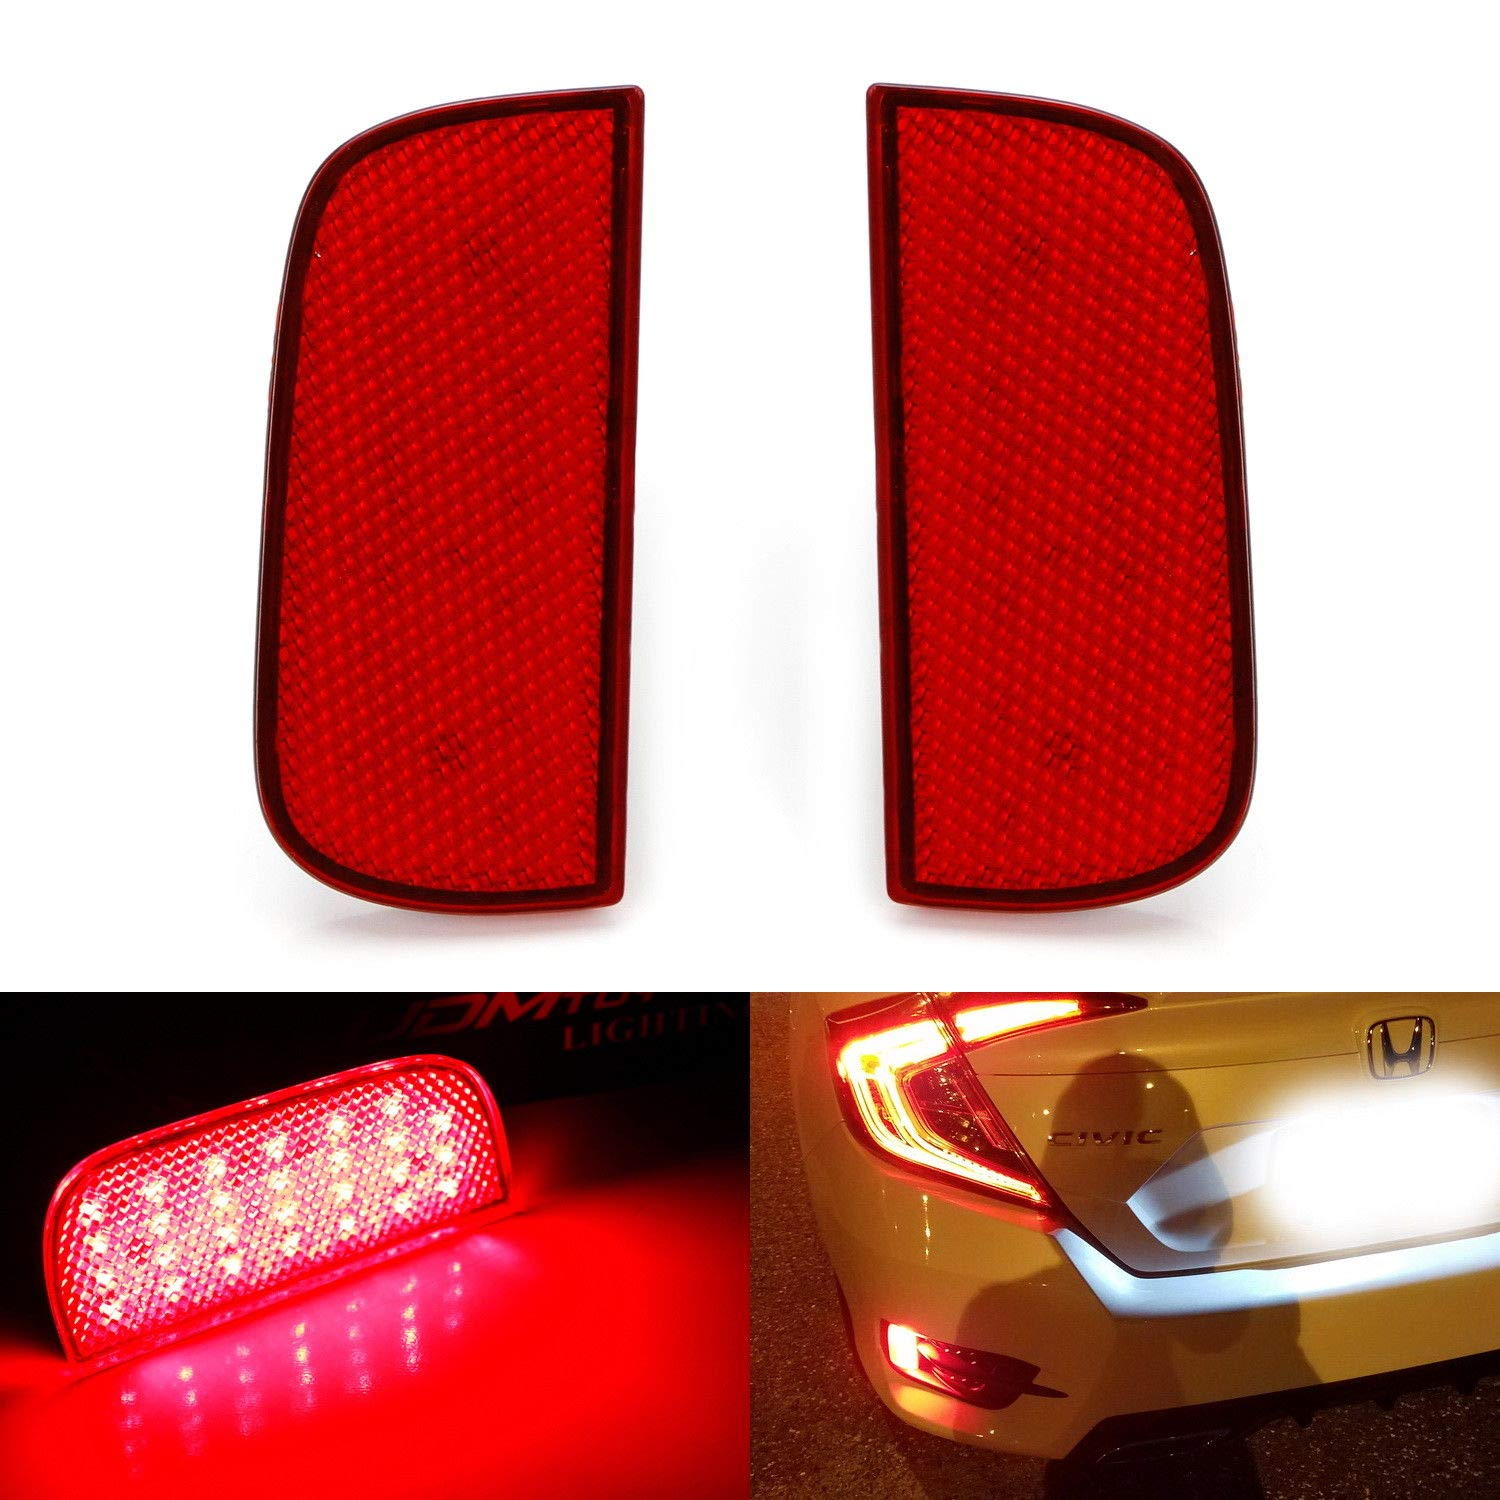 Brake /& Rear Fog Lamps Function as Tail iJDMTOY Red Lens 54-SMD LED Bumper Reflector Lights For 16-up Honda Civic Sedan//Coupe